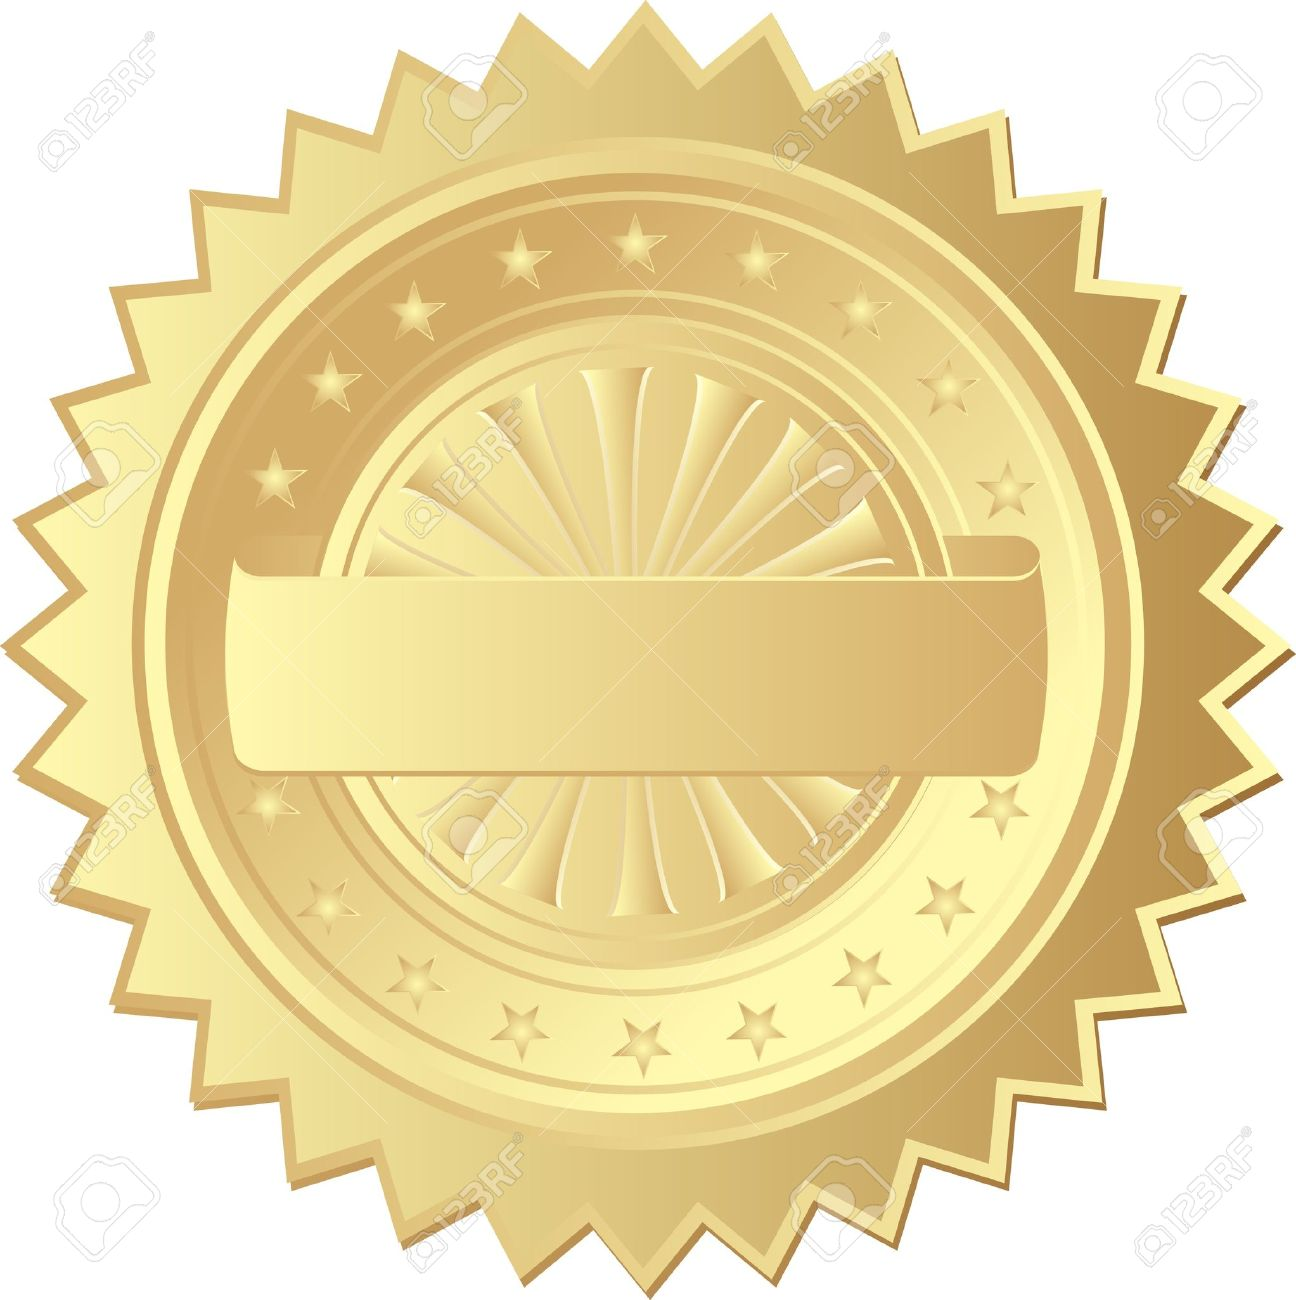 Official seal clipart picture transparent download Gold Seal Royalty Free Cliparts, Vectors, #467684 ... picture transparent download